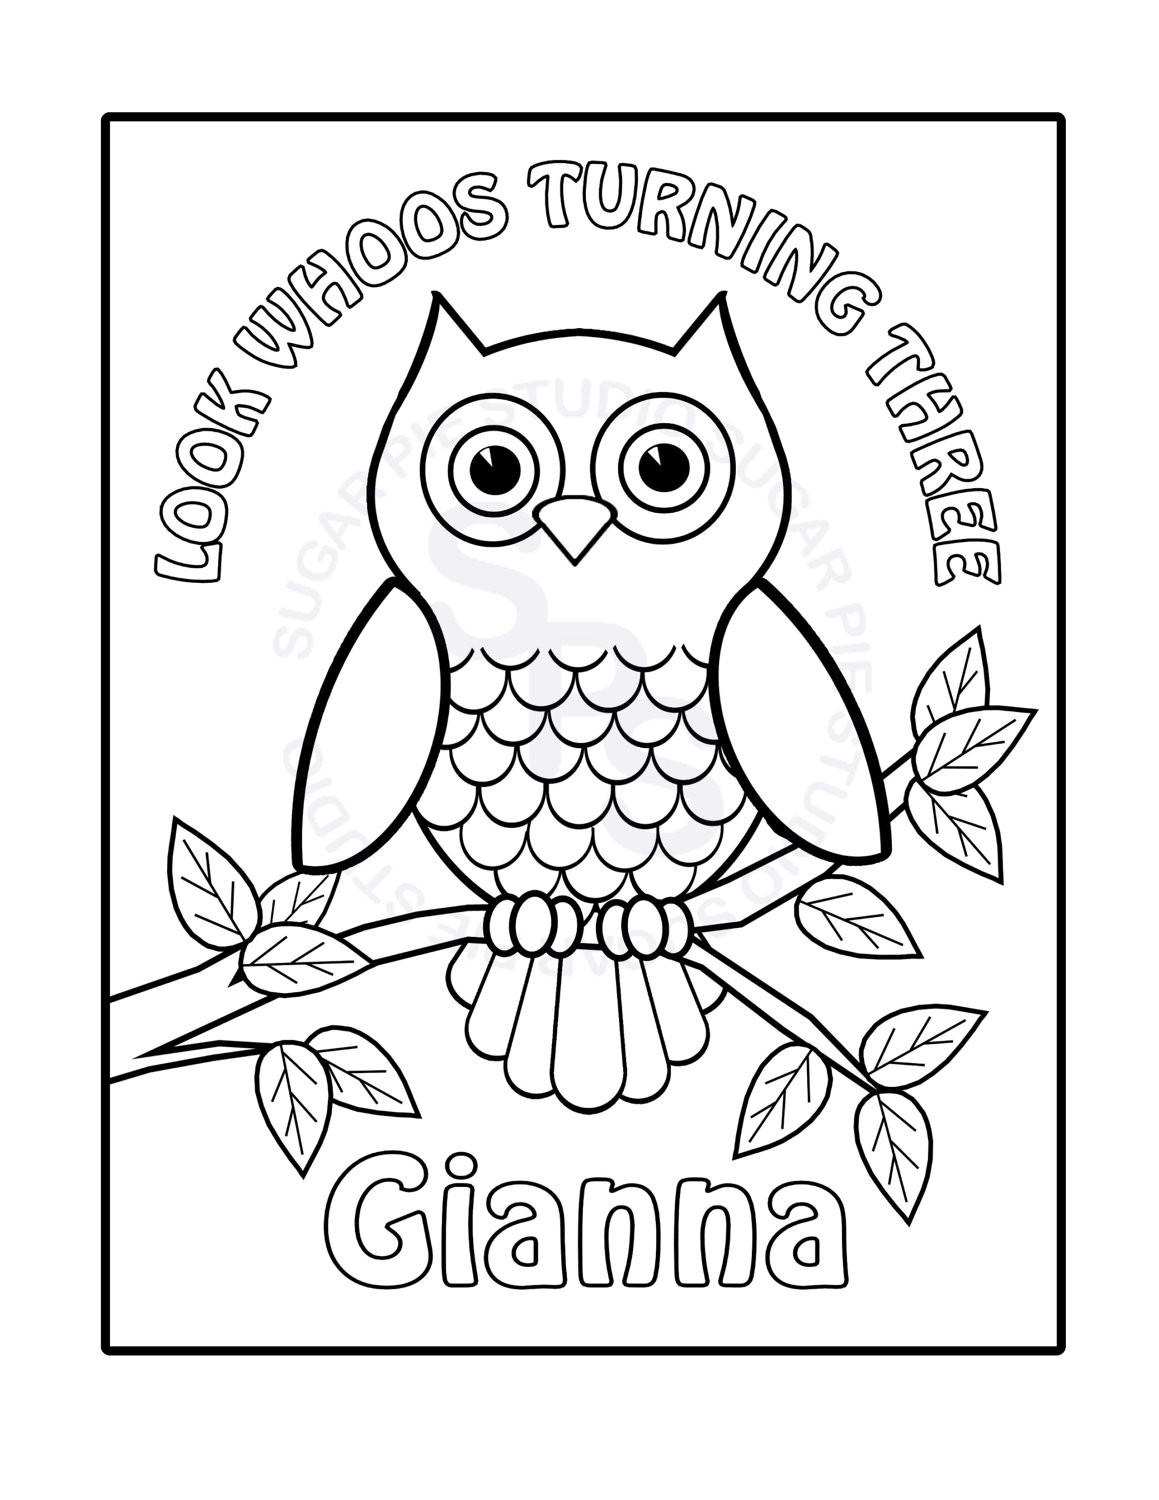 Personalized Coloring Pages  Personalized Printable Owl Birthday Party Favor childrens kids